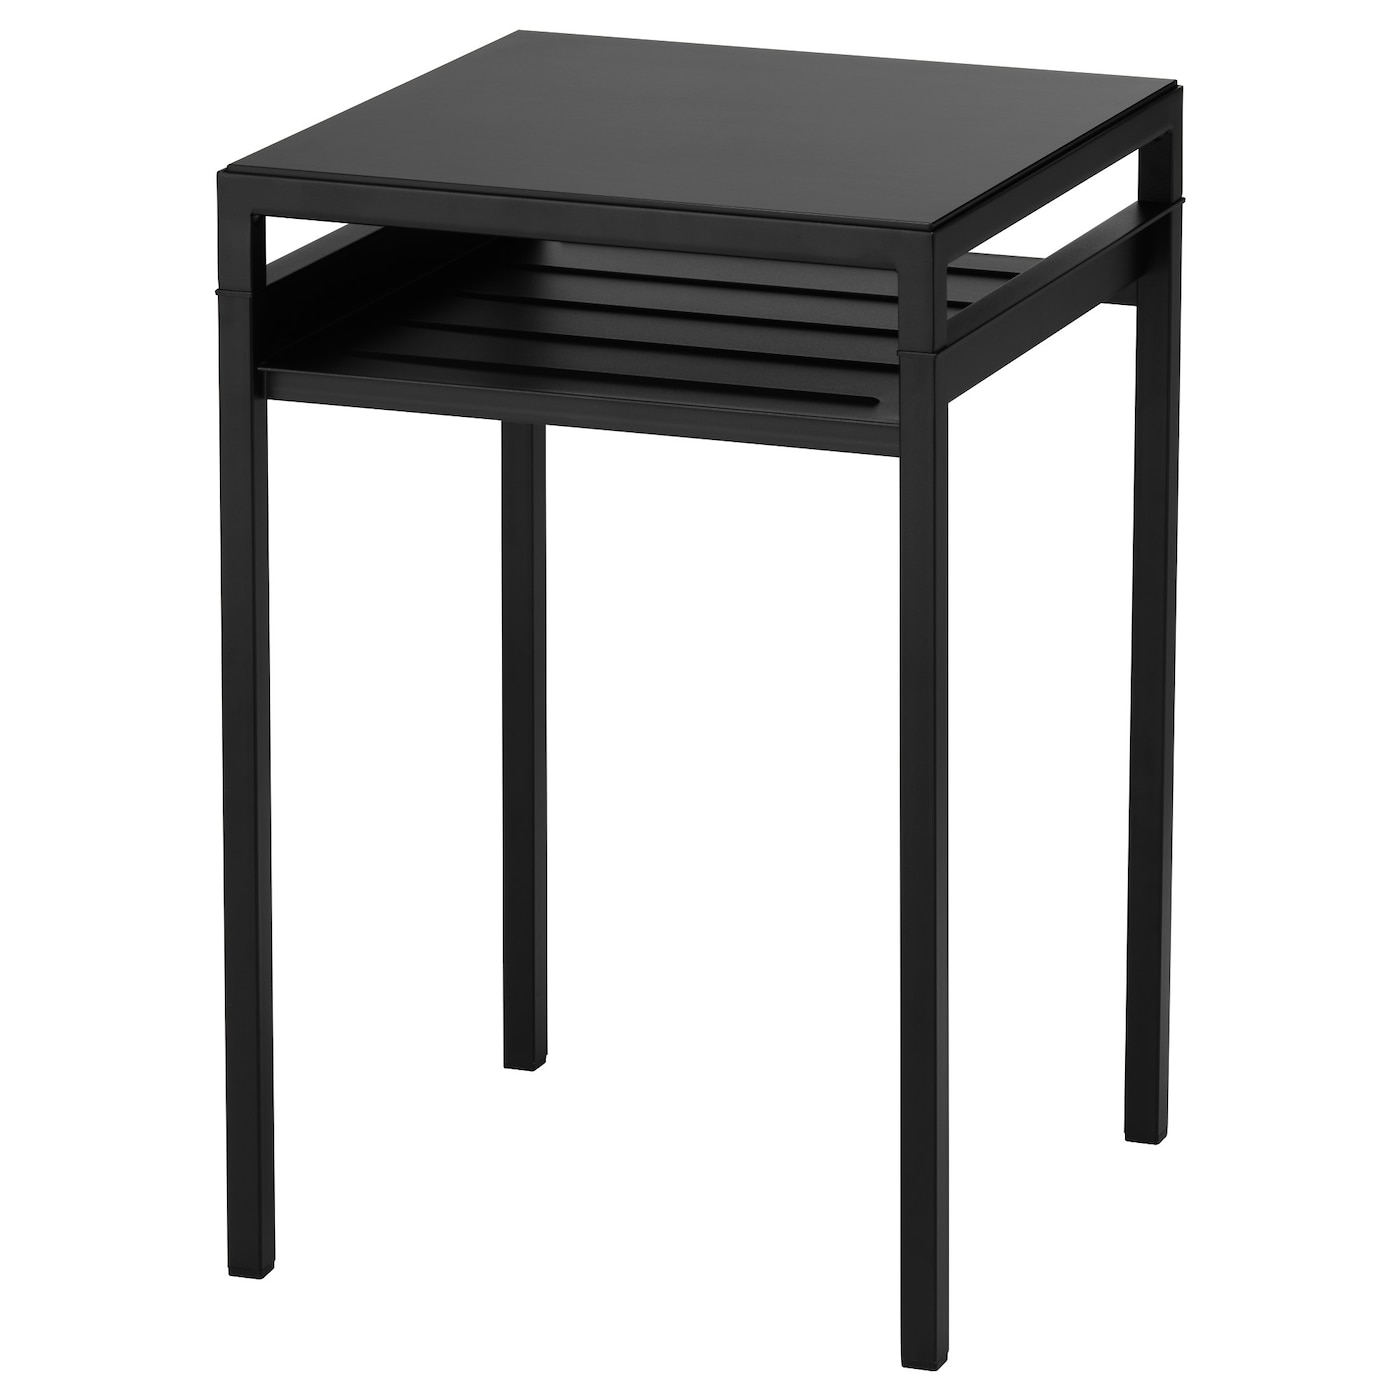 Occasional tables tray storage window tables ikea for Occasional tables